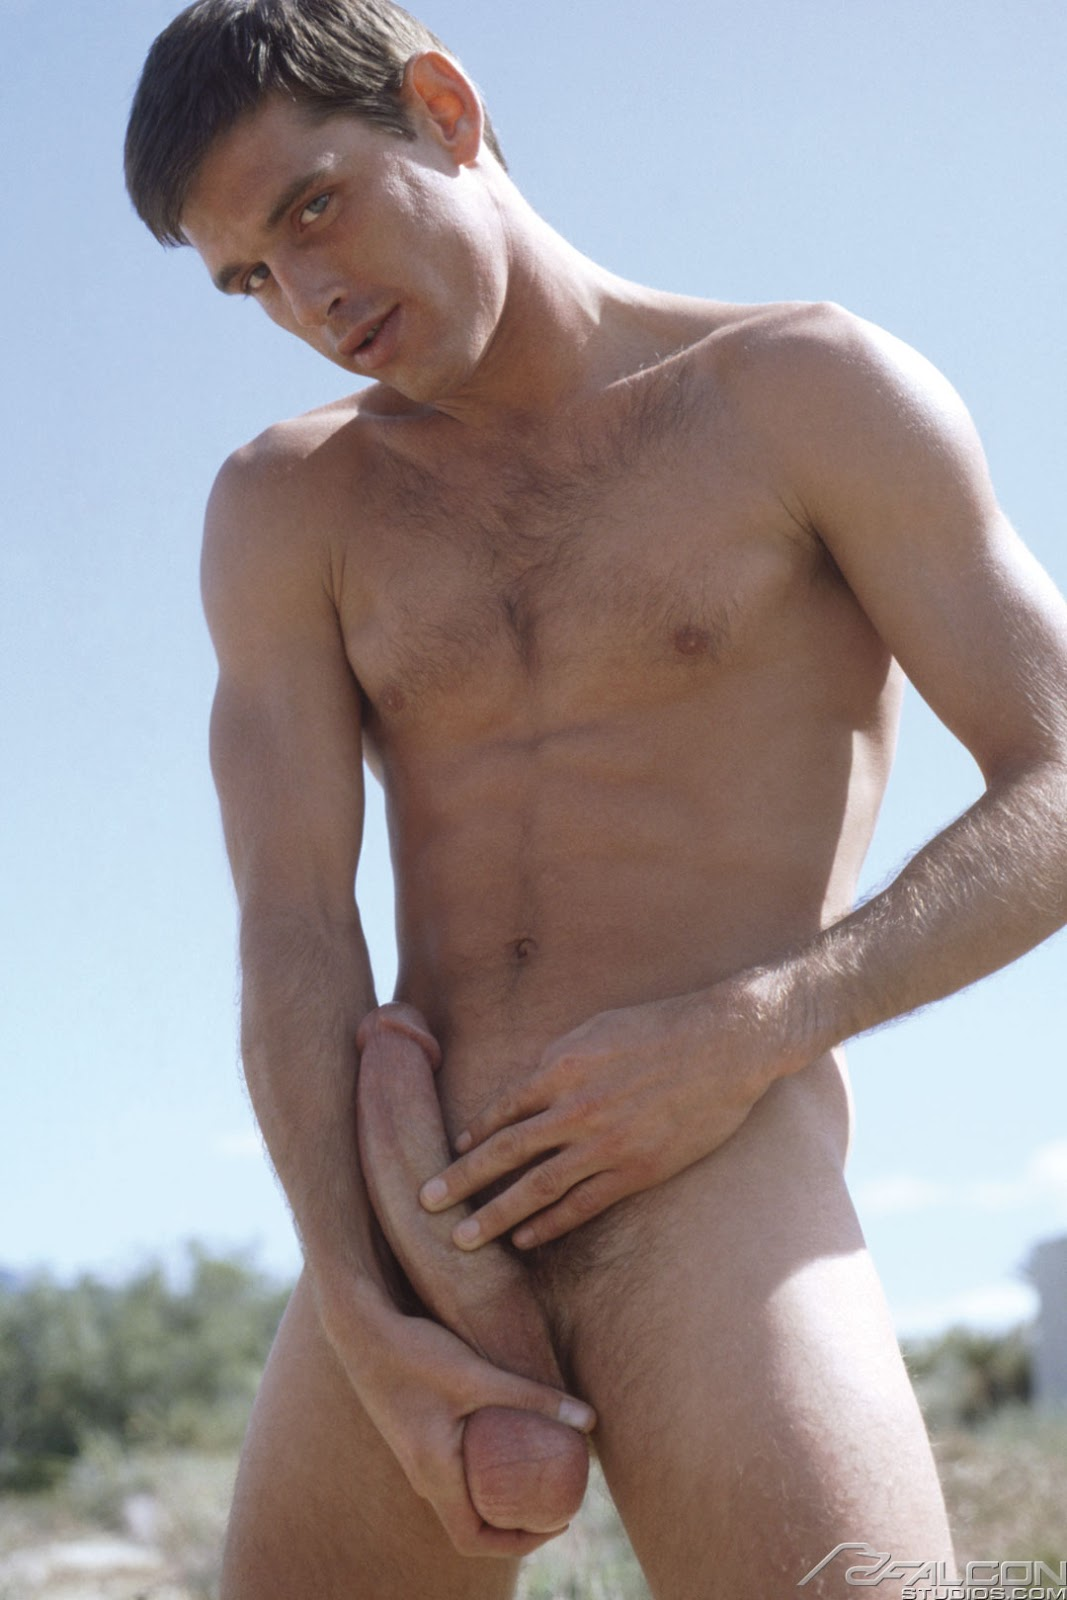 naked Kip Noll You might also like: